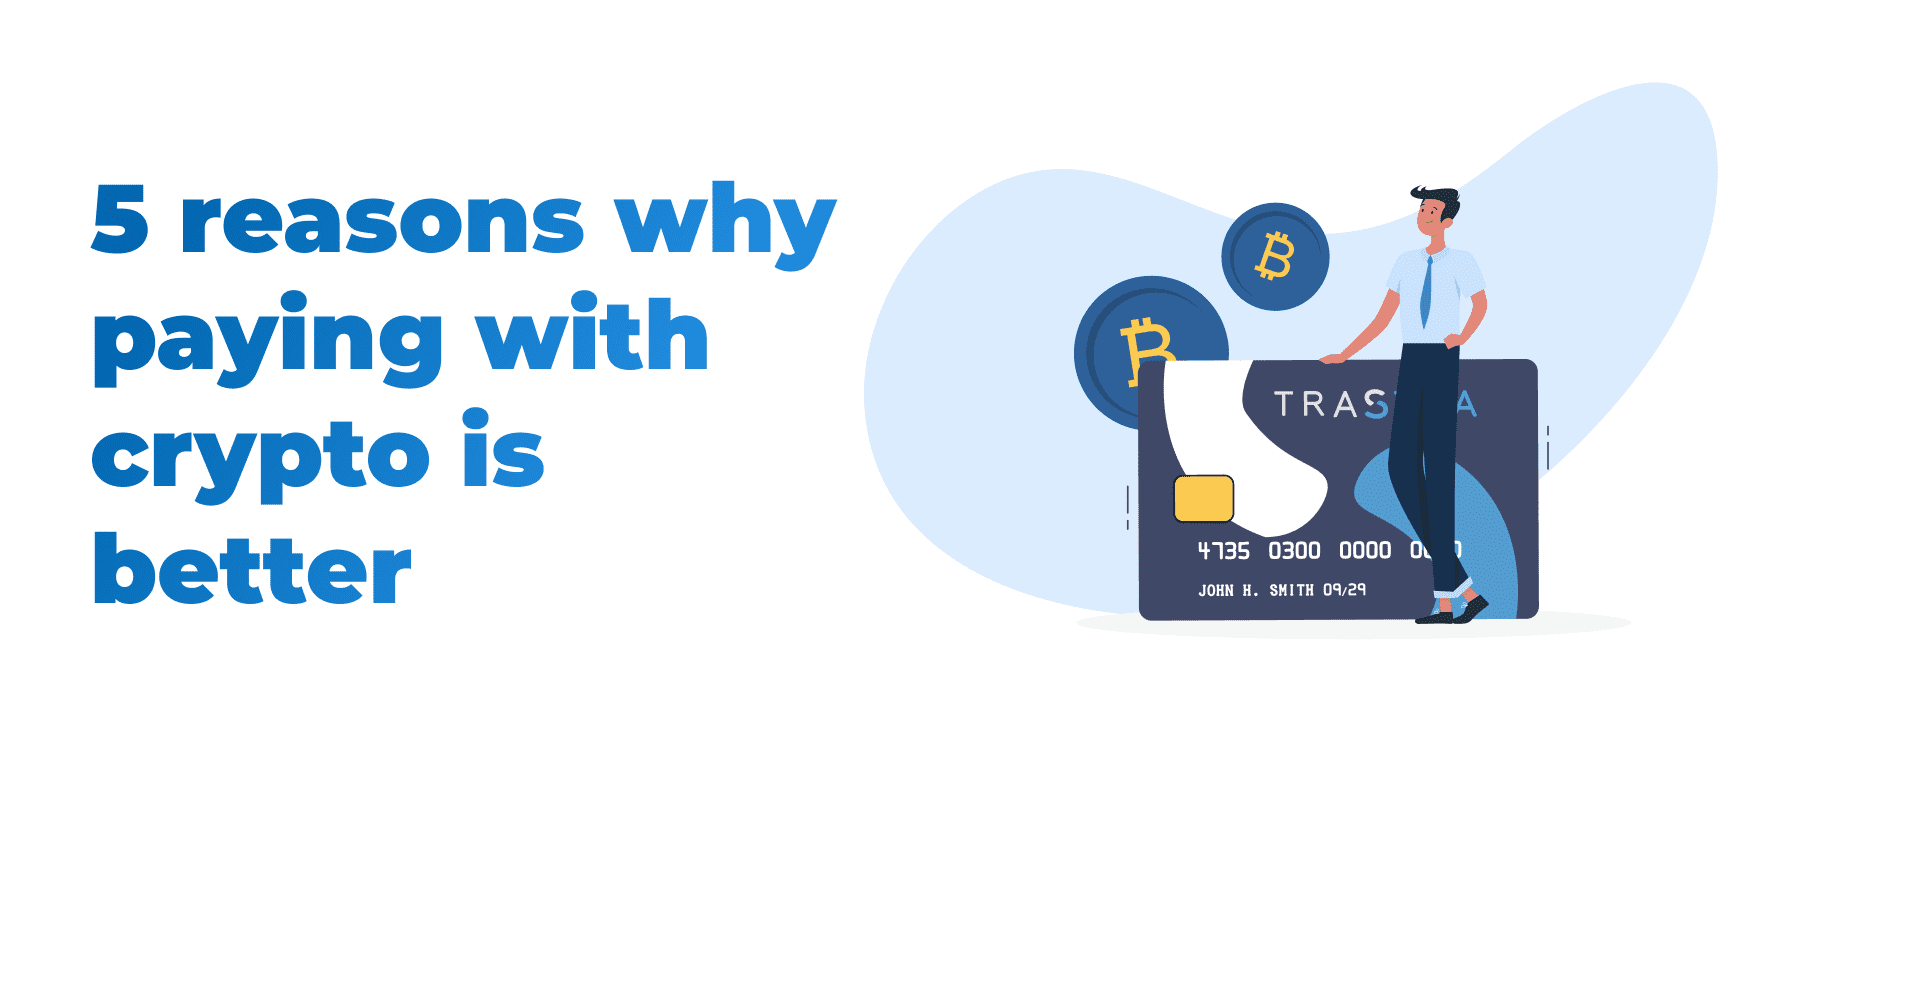 reasons why, paying with crypto is better, crypto, cryptocurrency, bitcoin, bitcoin cash, ripple, ethereum, litecoin, use crypto, invest in crypto, pay with crypto, crypto for pay